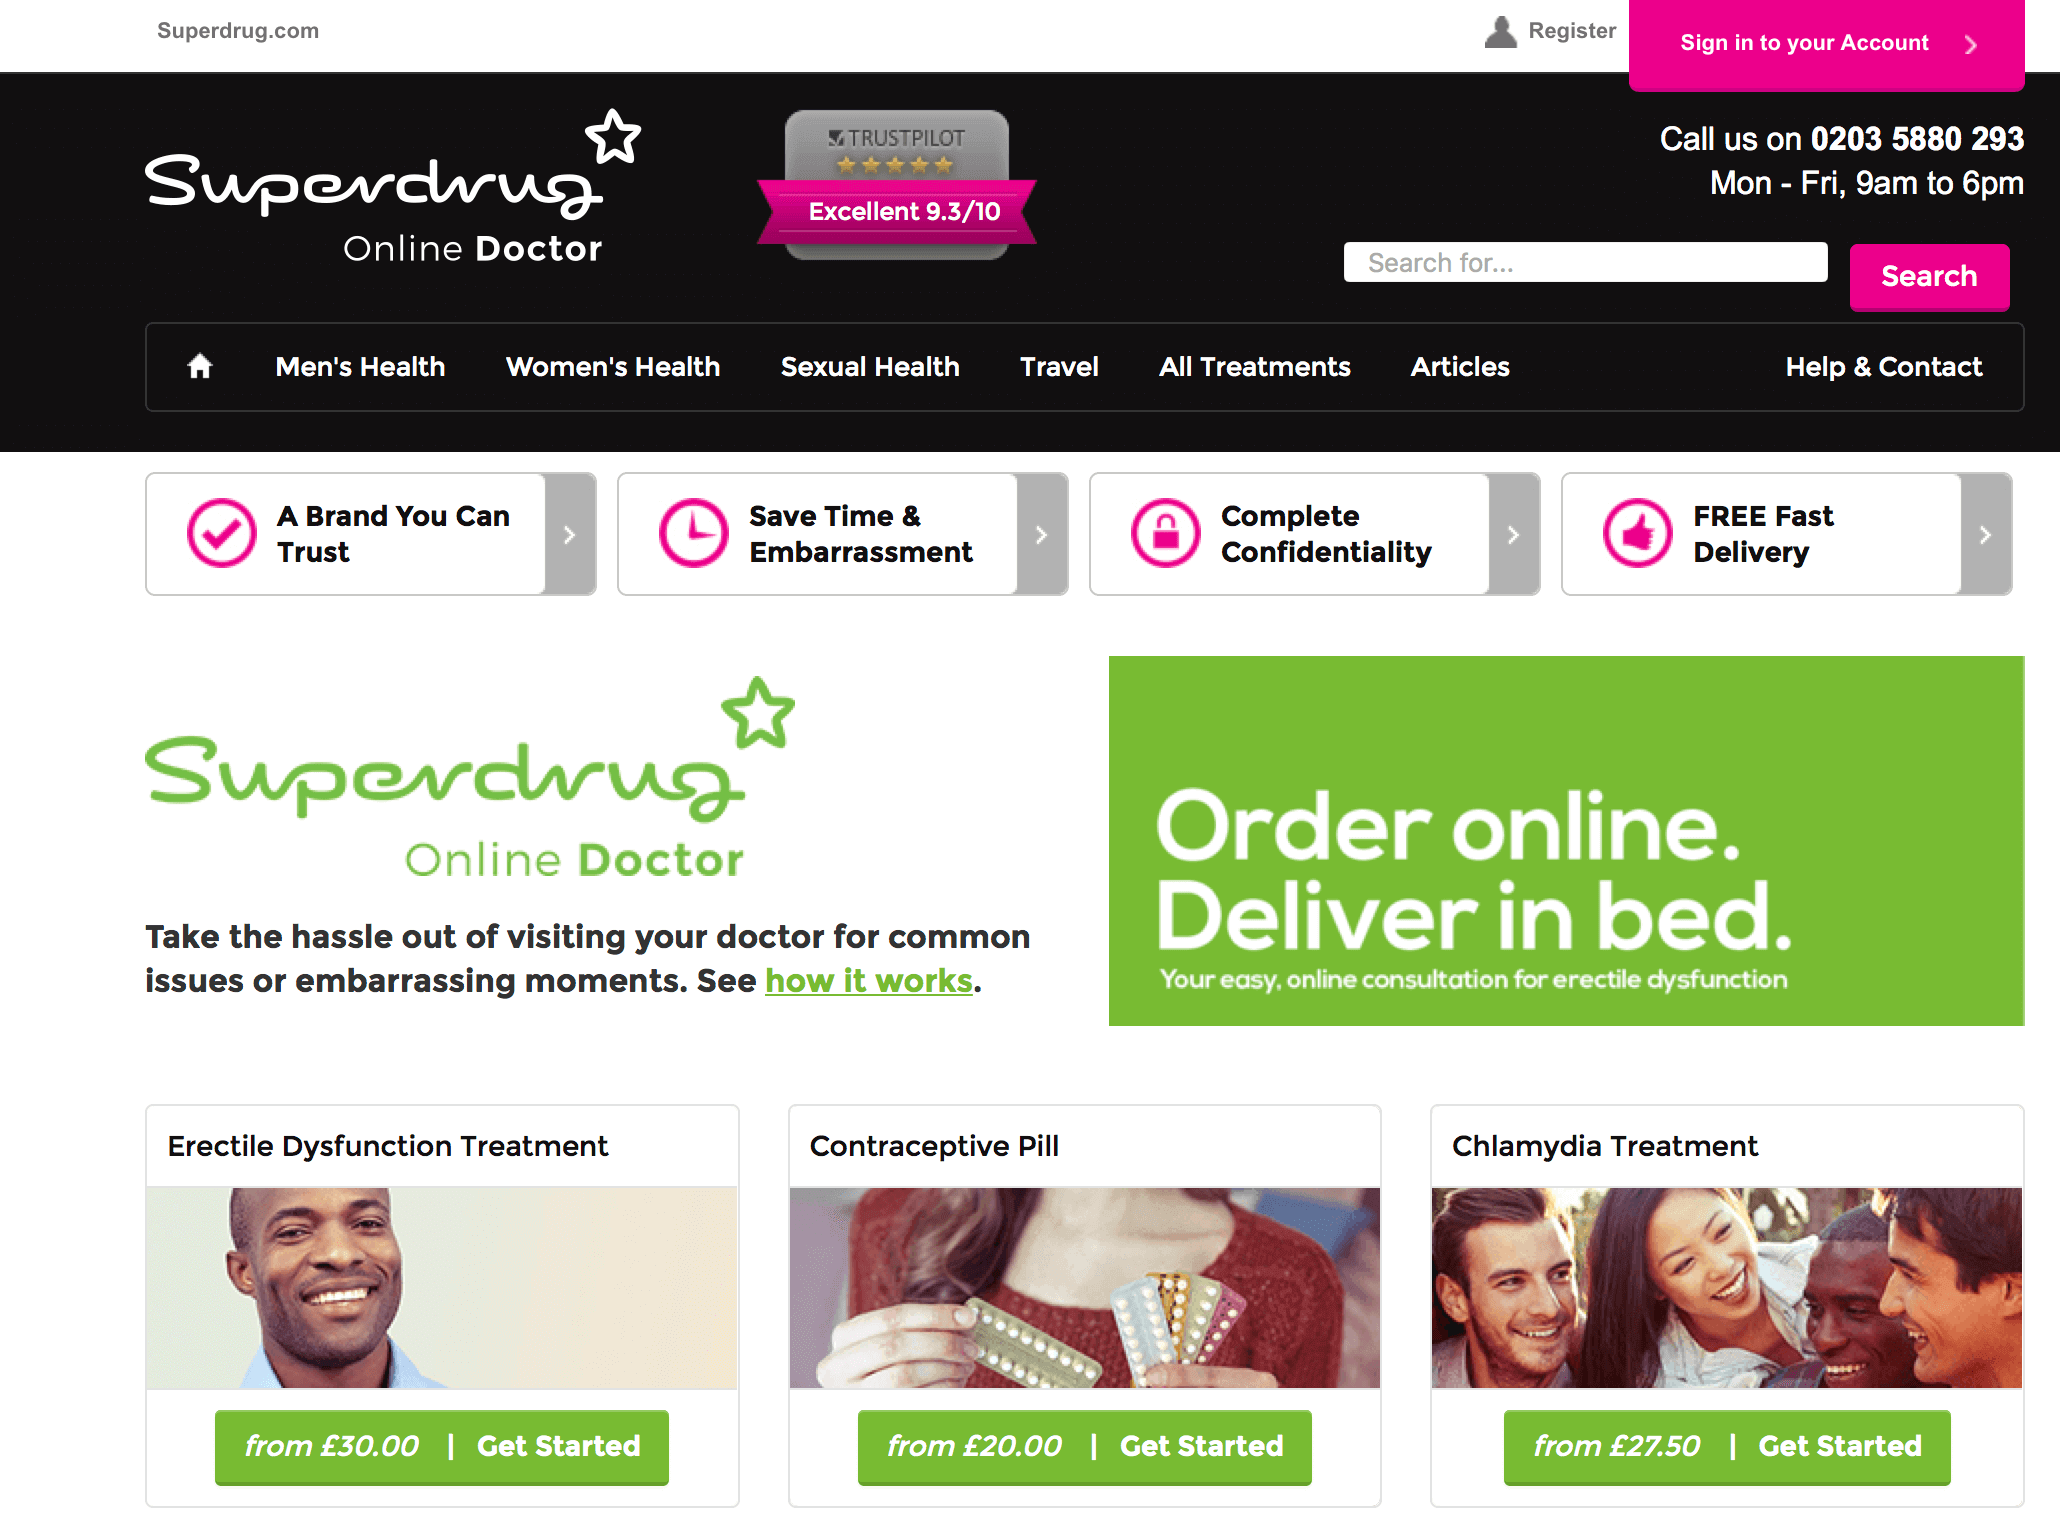 OnlineDoctor.superdrug.com Pharmacy Review